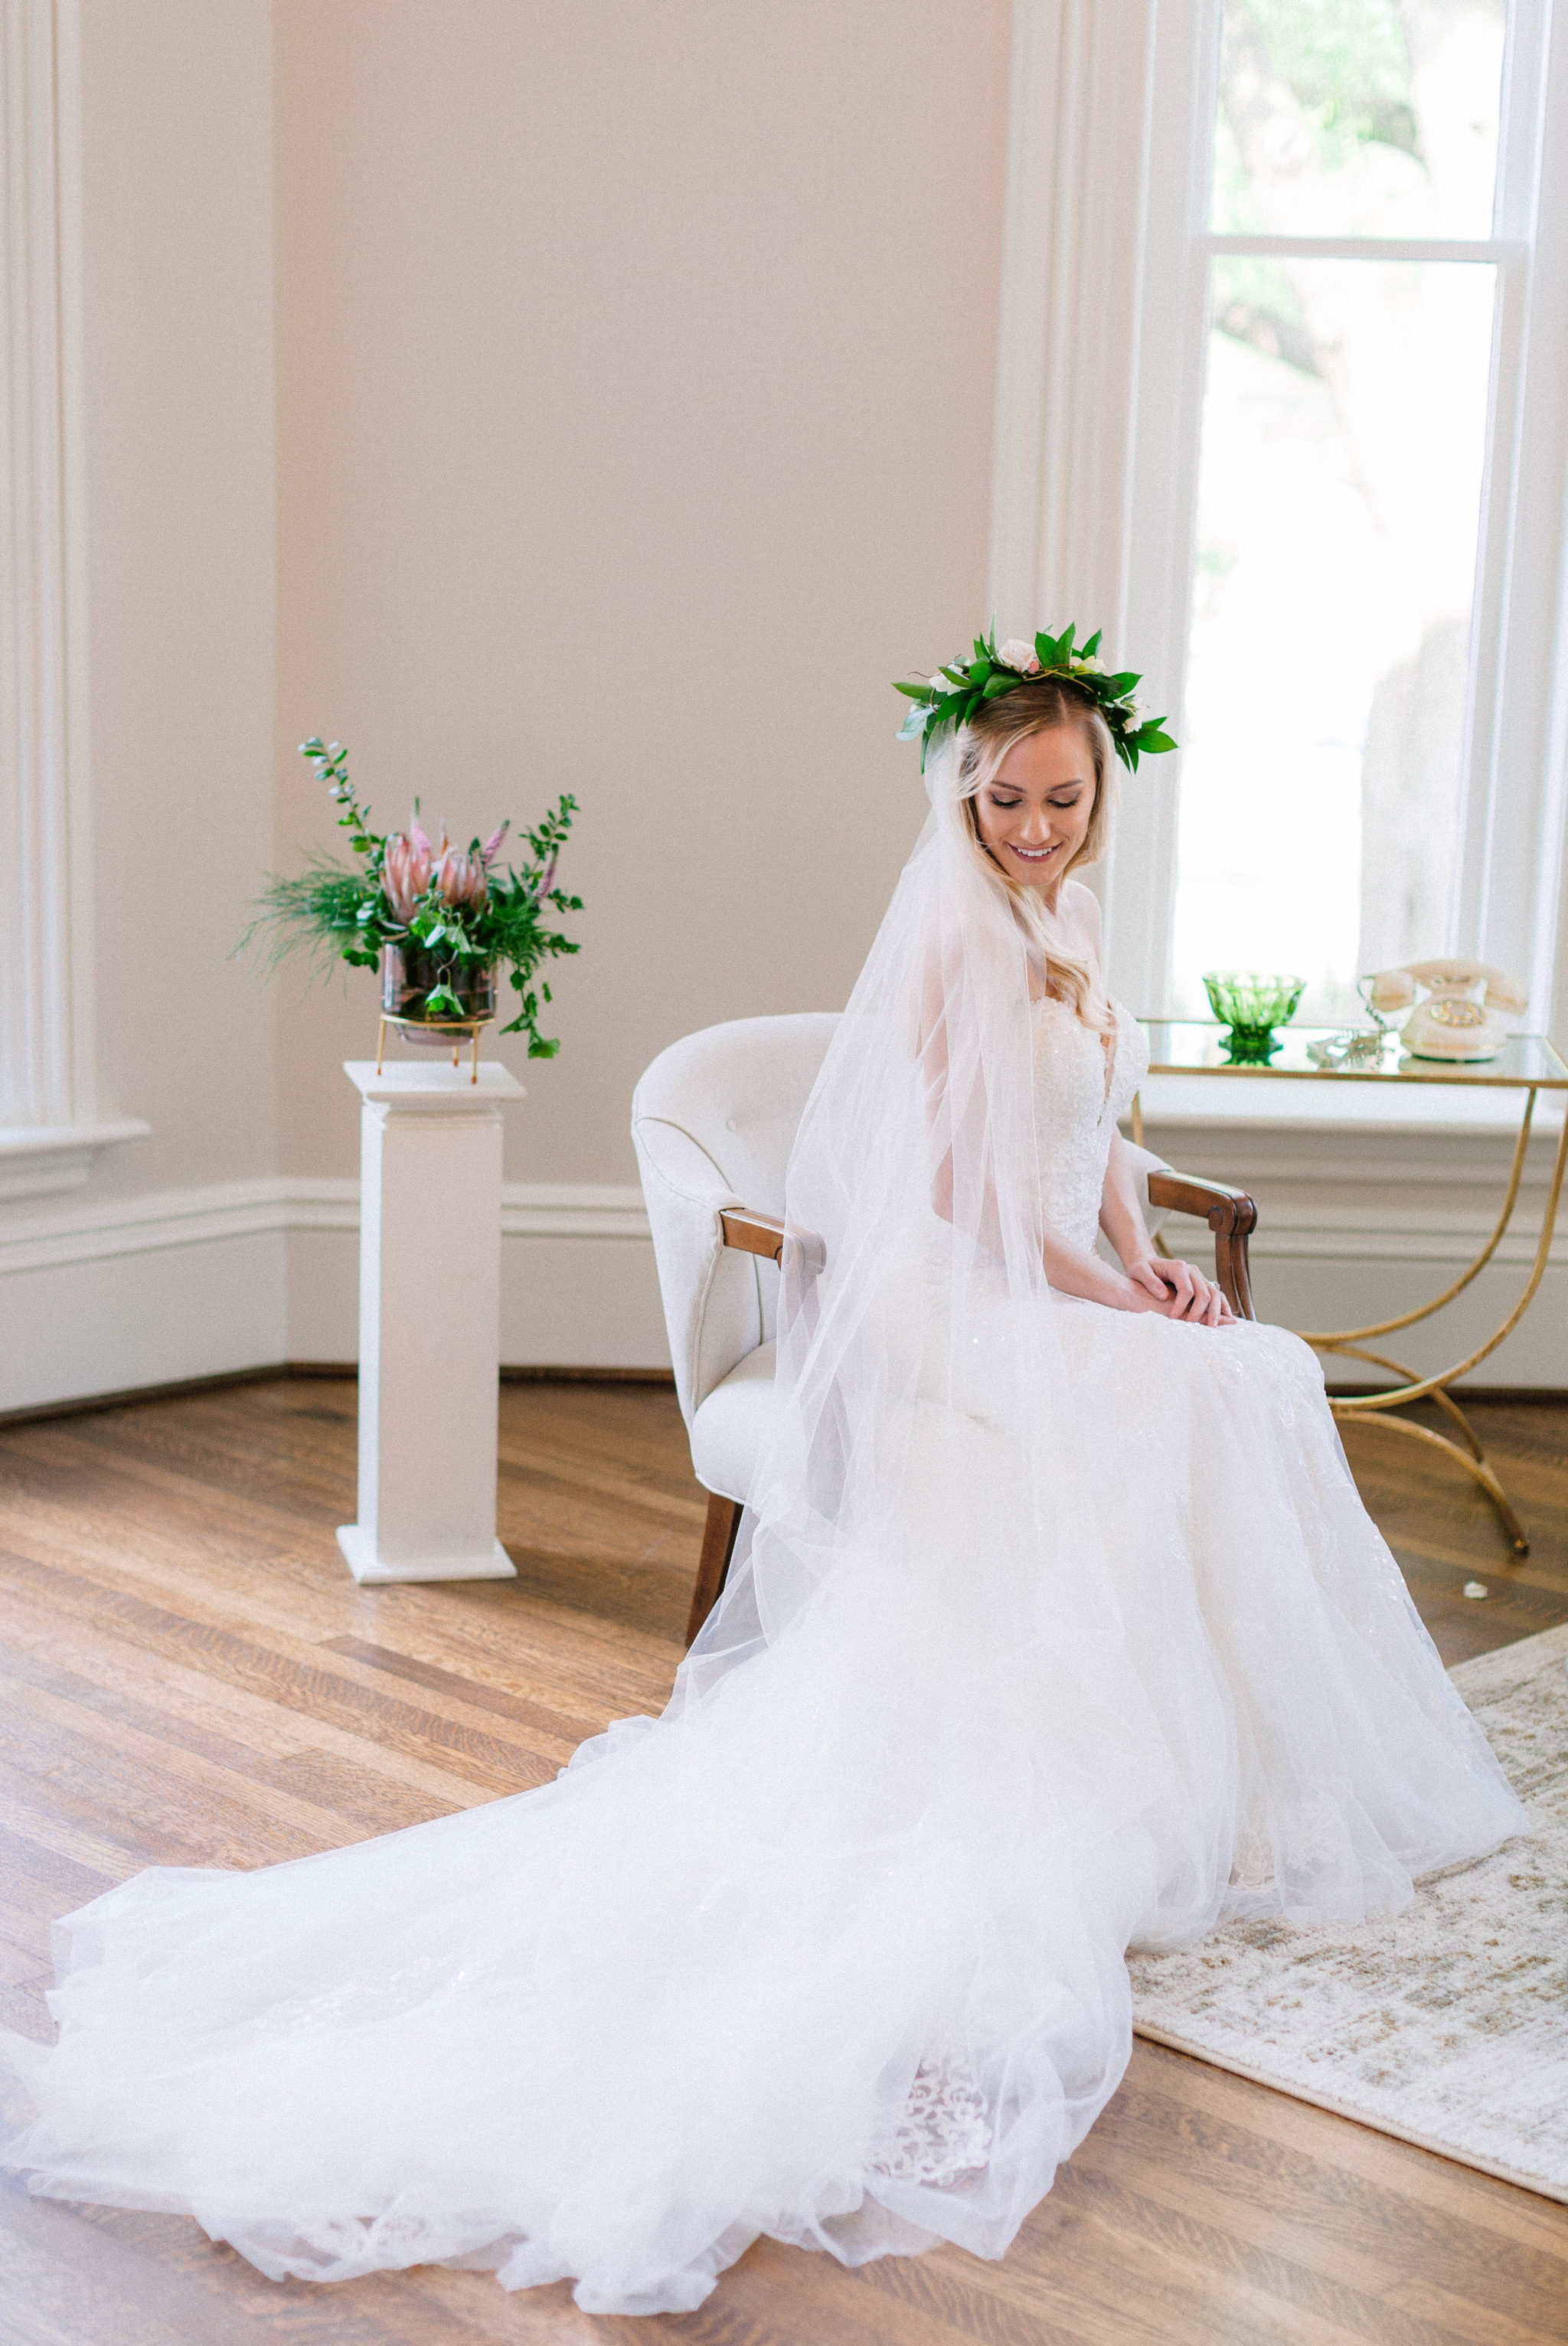 Indoor Bridal Portraits in an all white room at a luxury estate with natural light before the ceremony - Bride is wearing a Hawaiian Flower Crown and a cathedral veil in a Wedding Gown by Stella York and sitting in a chair  - Honolulu Oahu Hawaii Wedding Photographer - Johanna Dye Photography